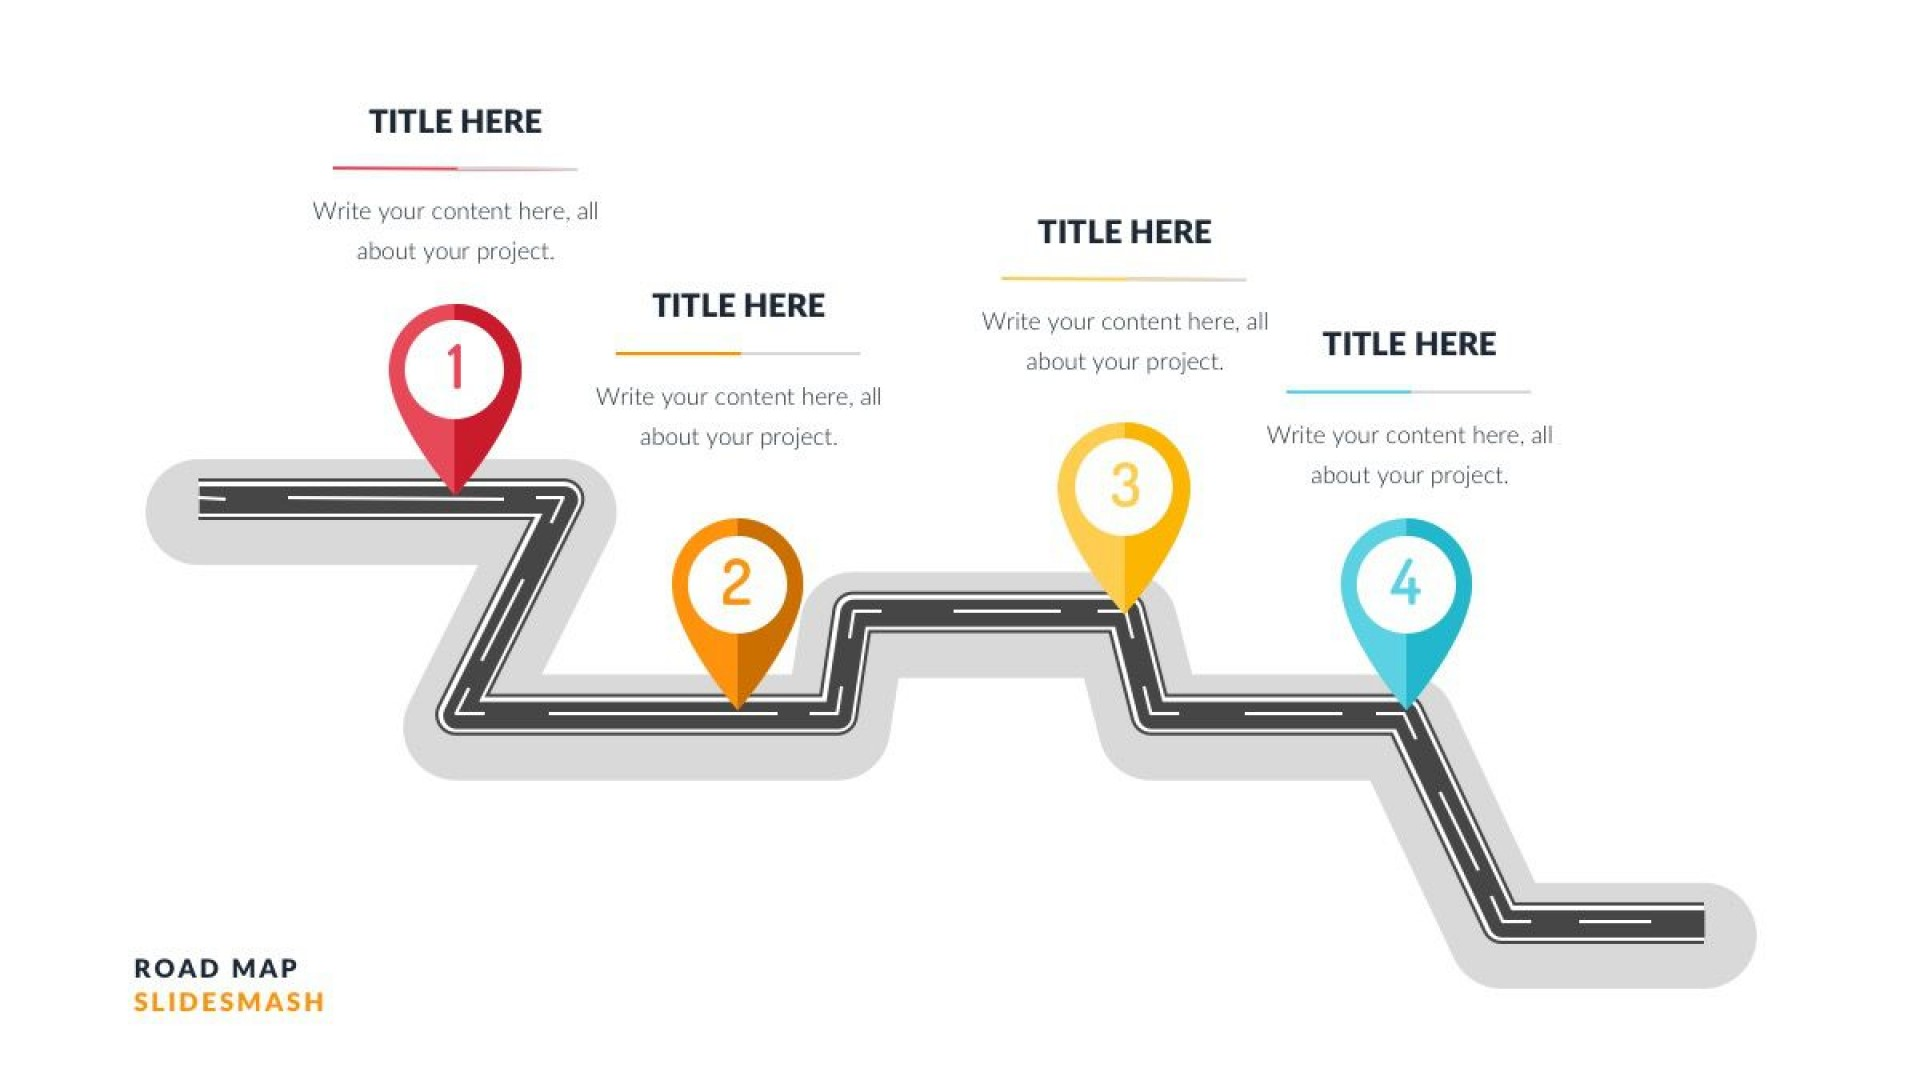 002 Fantastic Road Map Template Powerpoint Highest Clarity  Roadmap Ppt Free Download Product1920